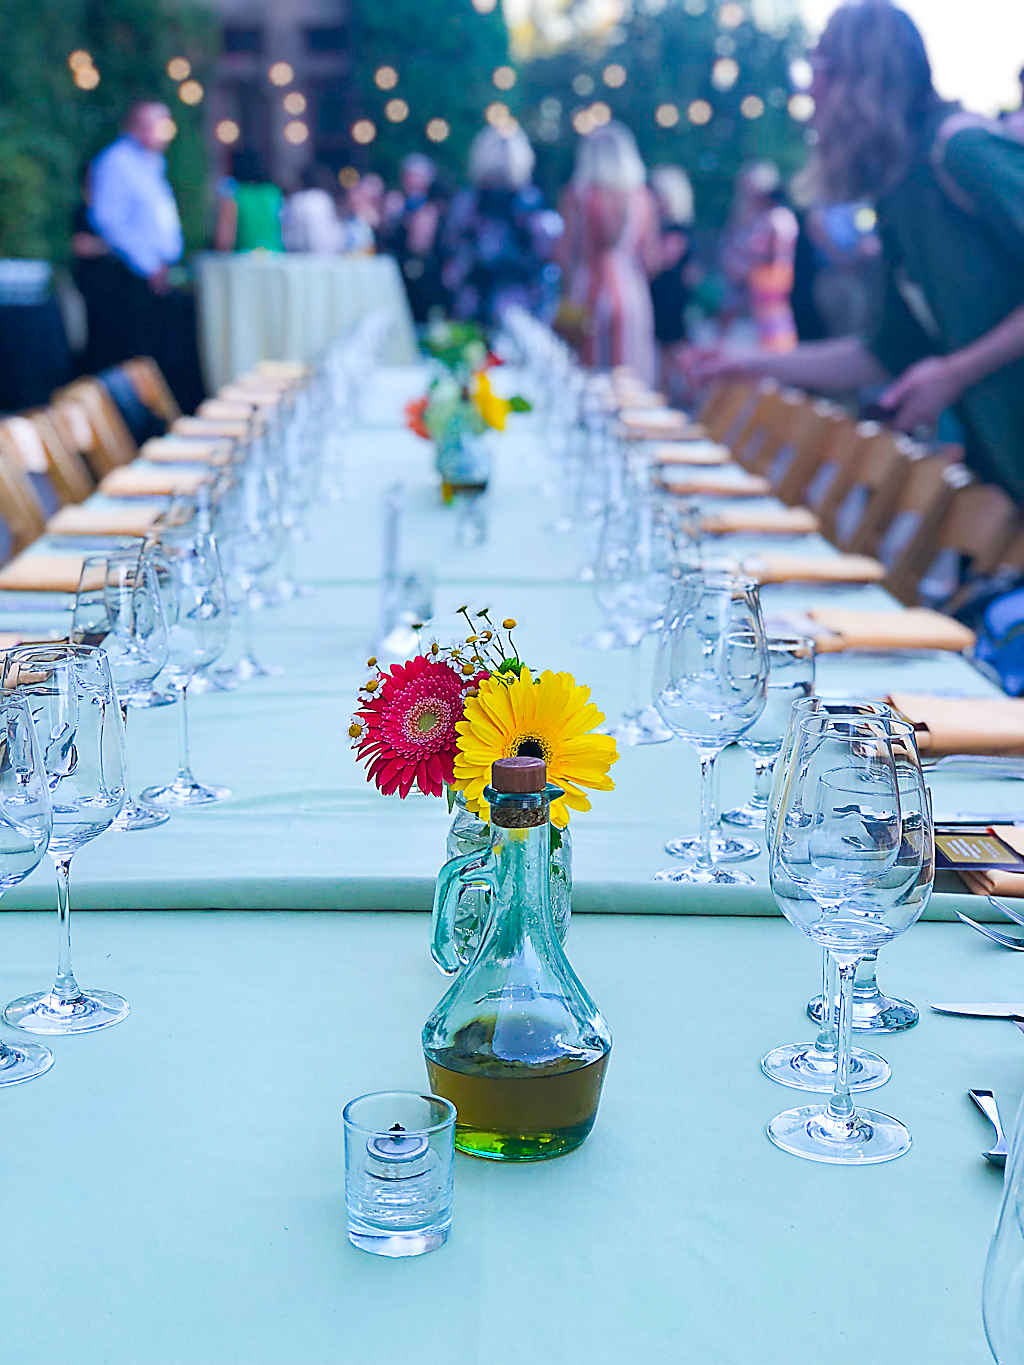 Table setting at Culinary Institute of America